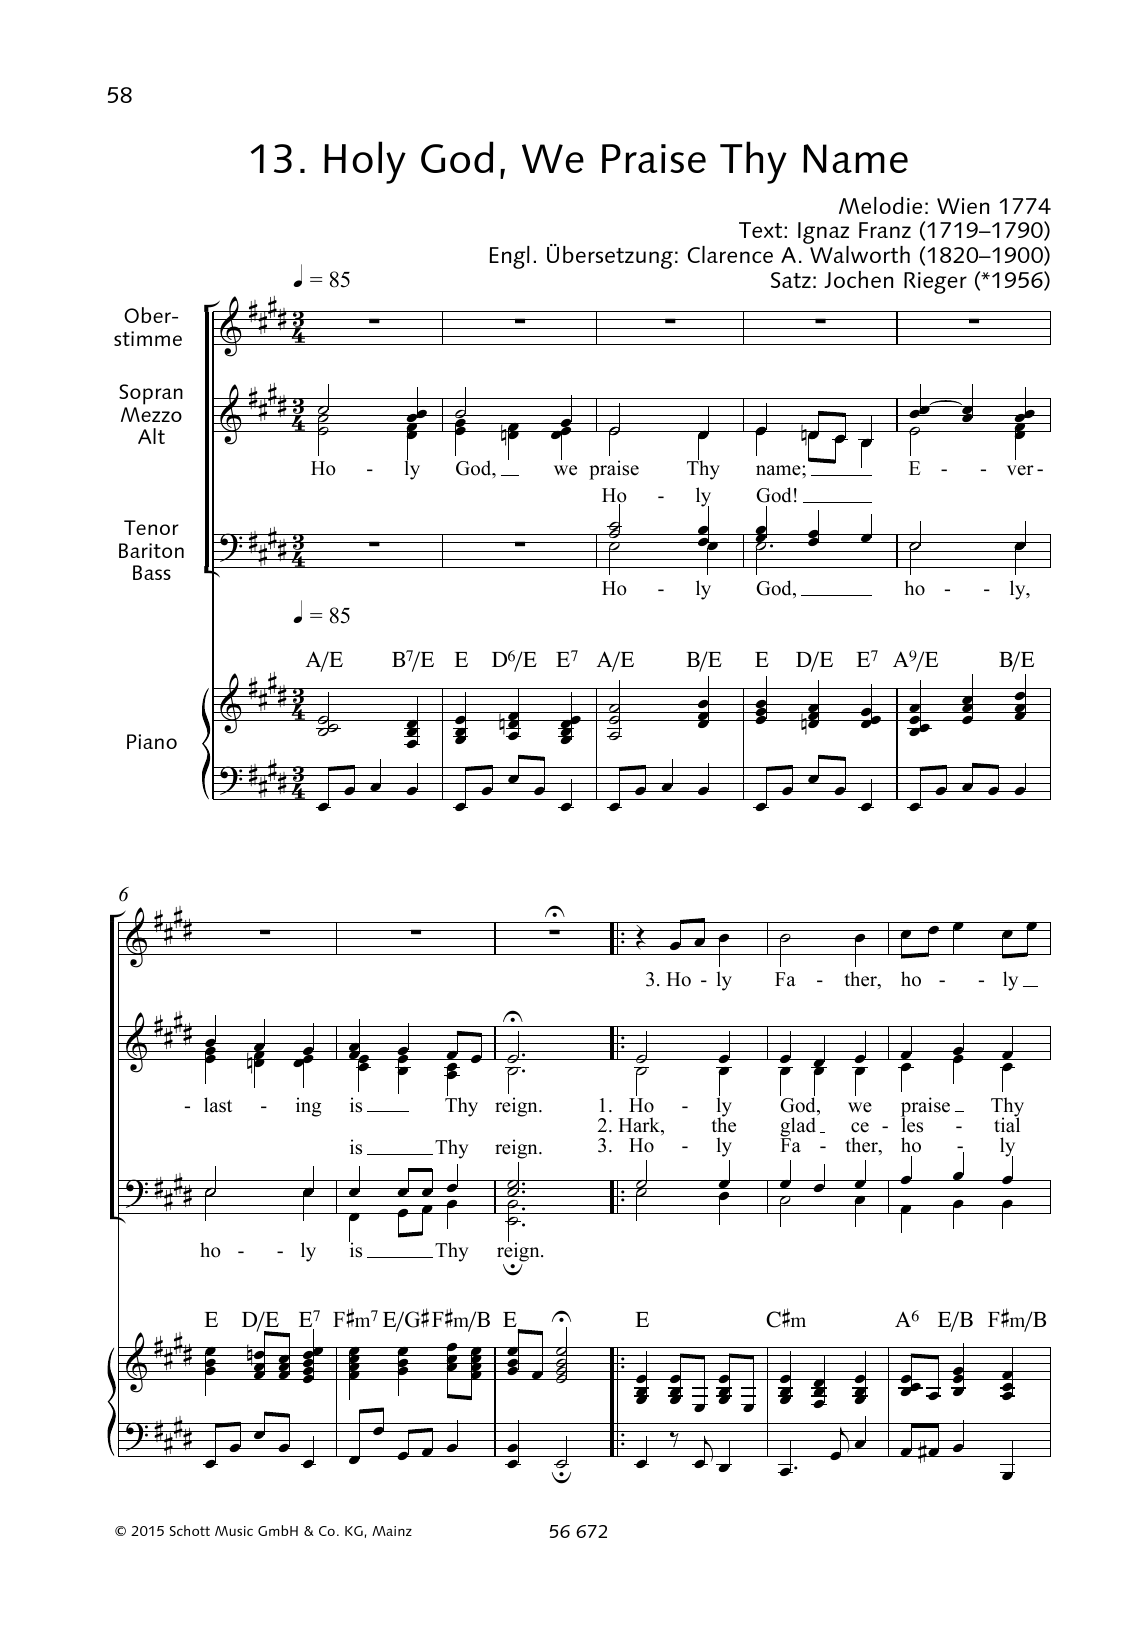 Holy God, We Praise Thy Name Sheet Music